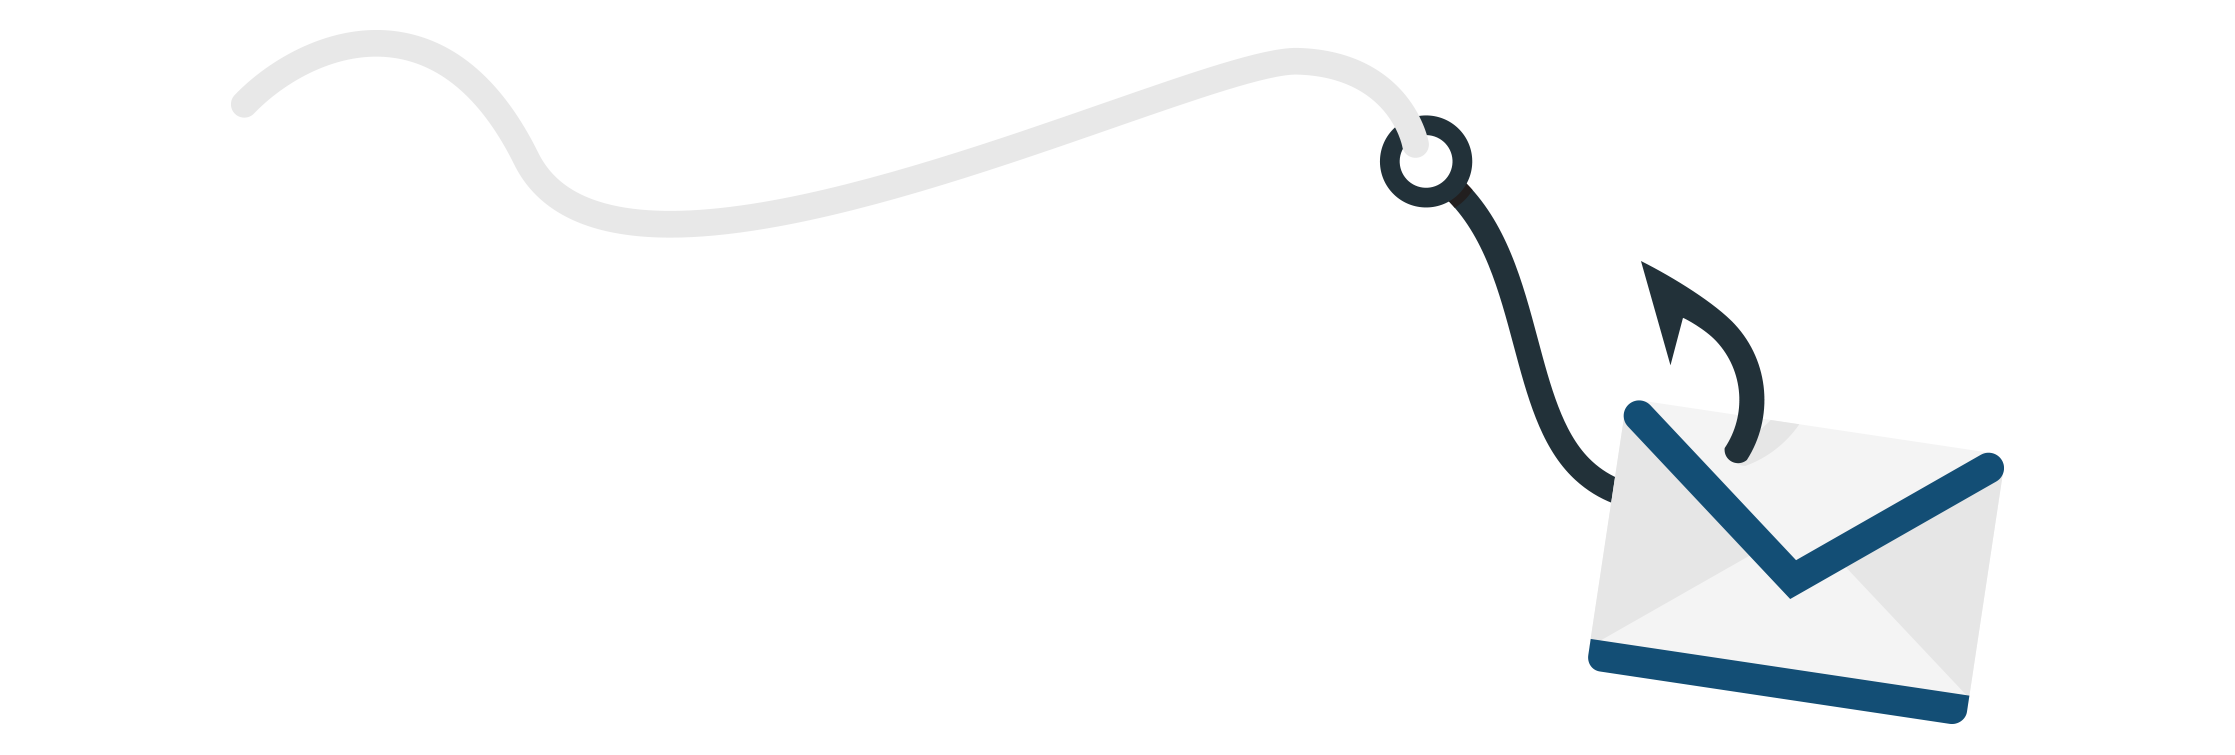 A fishing line with a hook that is attached to an envelope to symbolize a phishing email trying to lure its recipients.